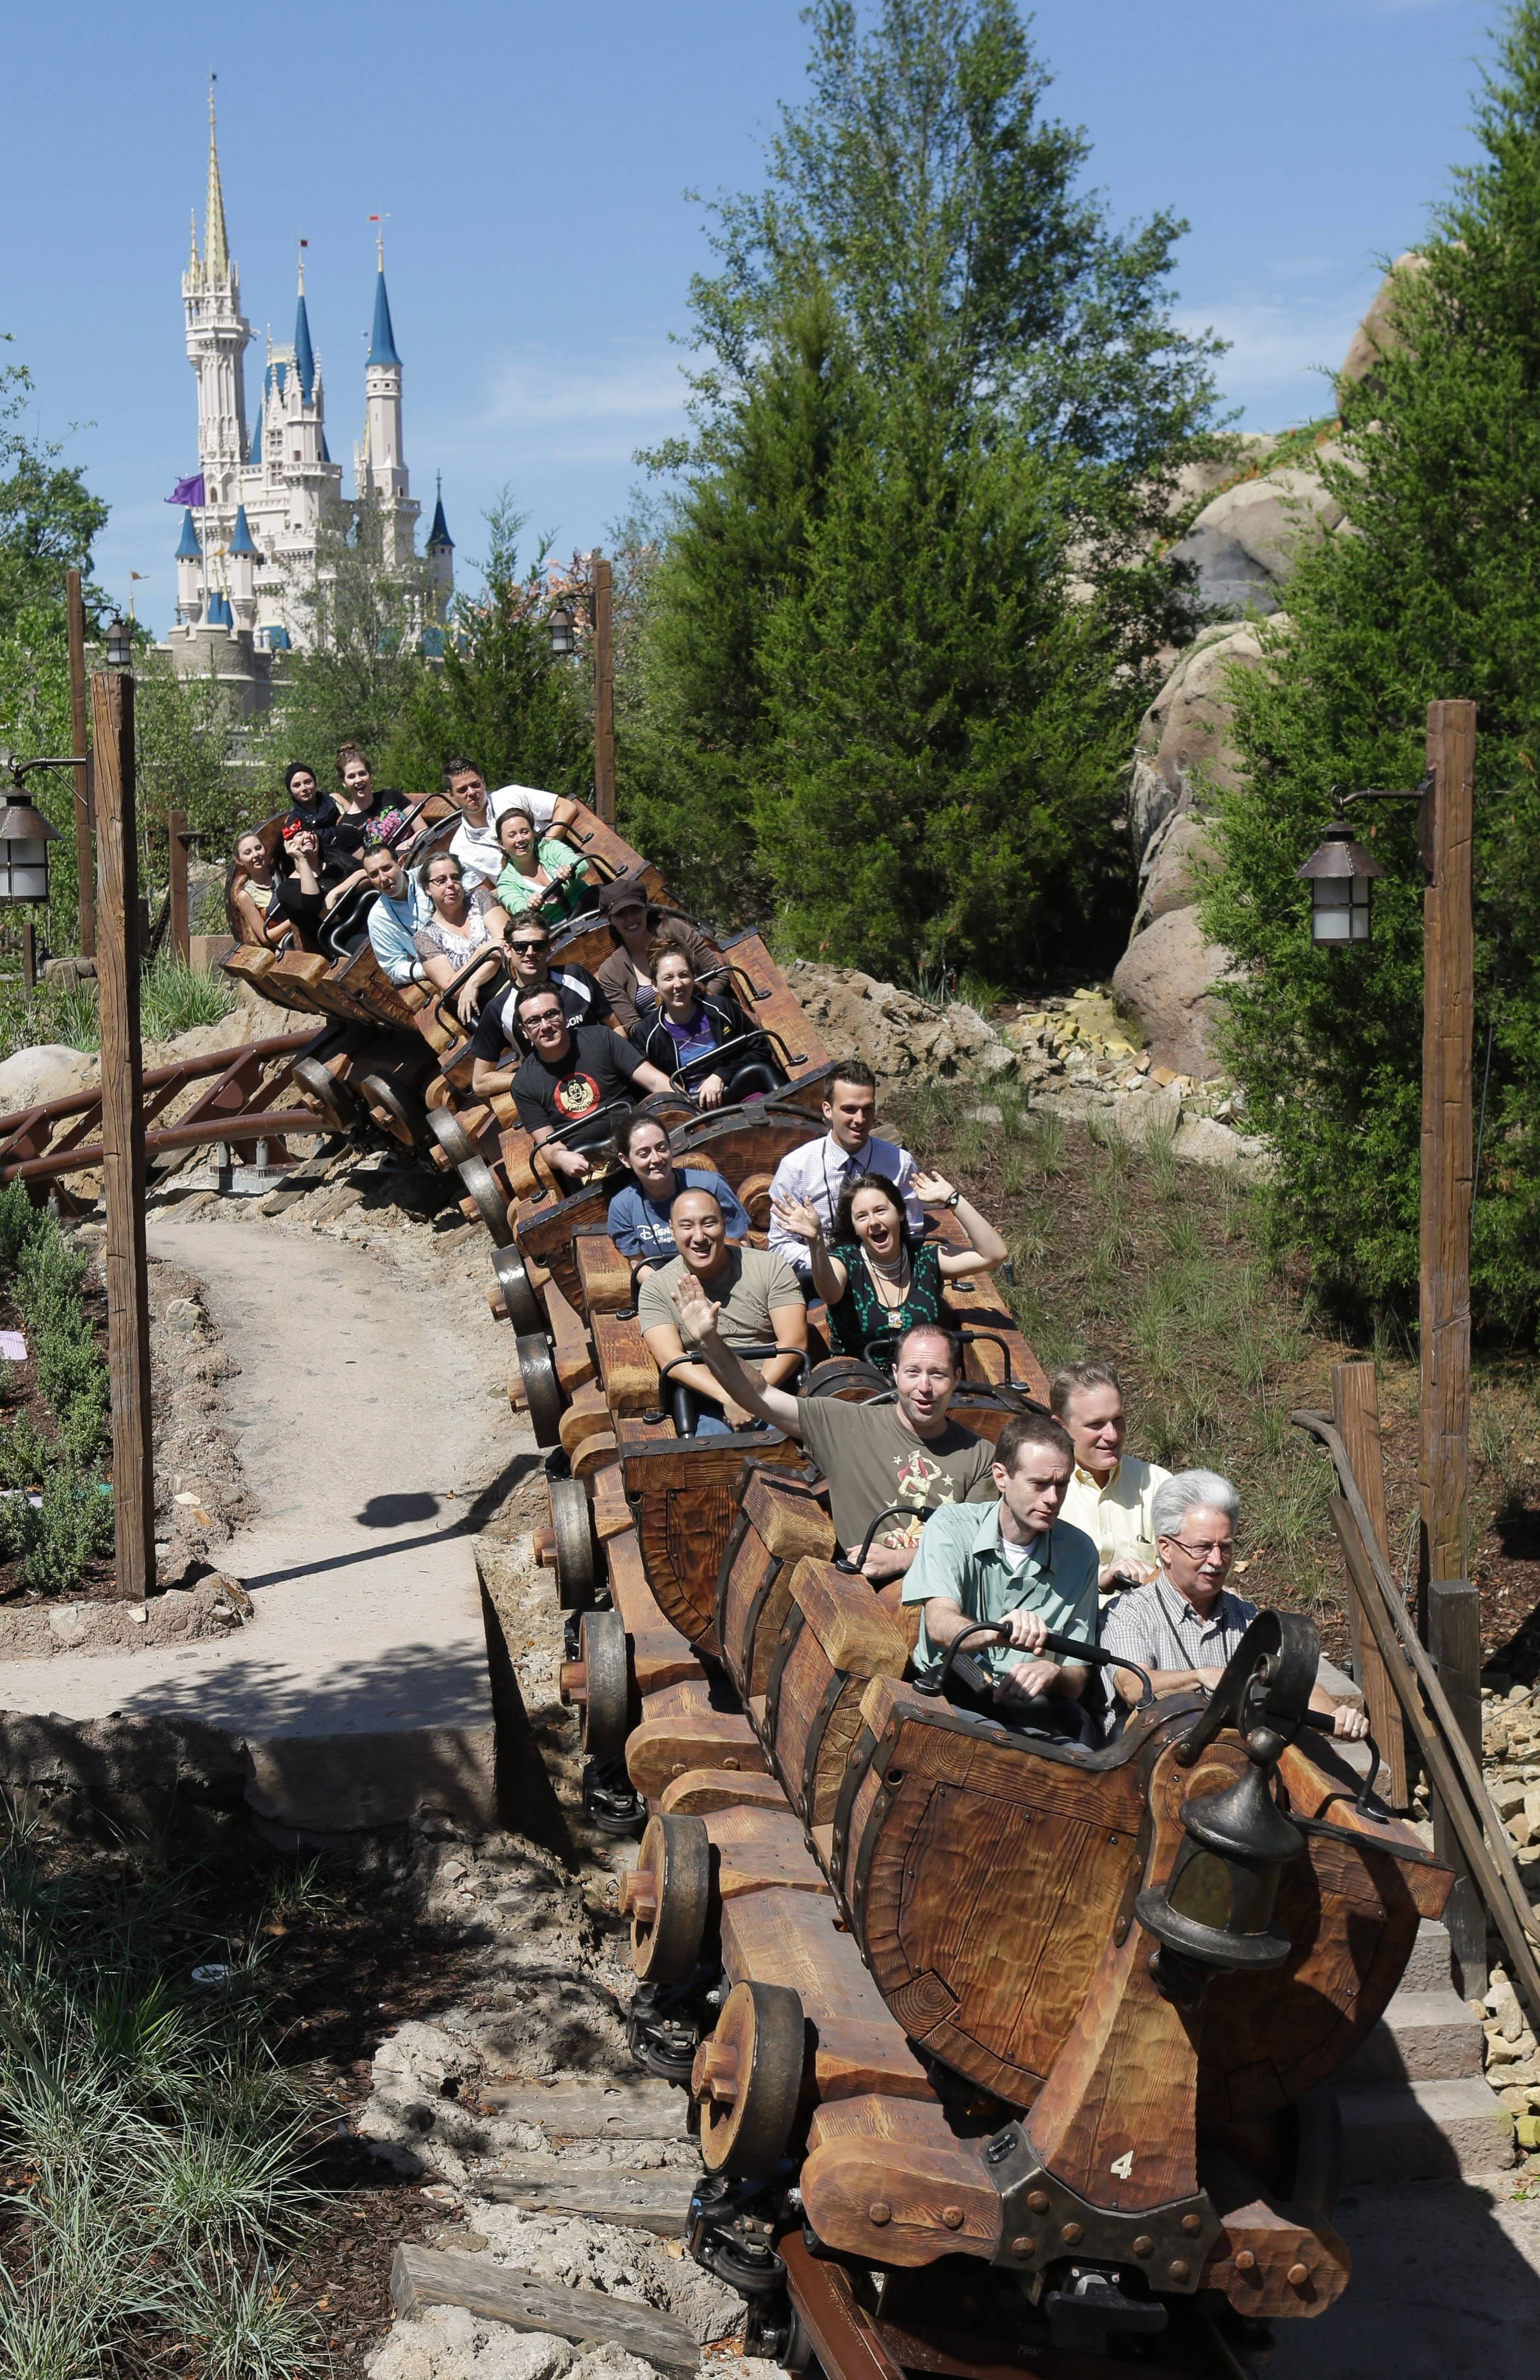 Disney cast members test the new Seven Dwarfs Mine Train roller coaster in the Magic Kingdom at Walt Disney World in Lake Buena Vista, Fla. The ride opened Wednesday.